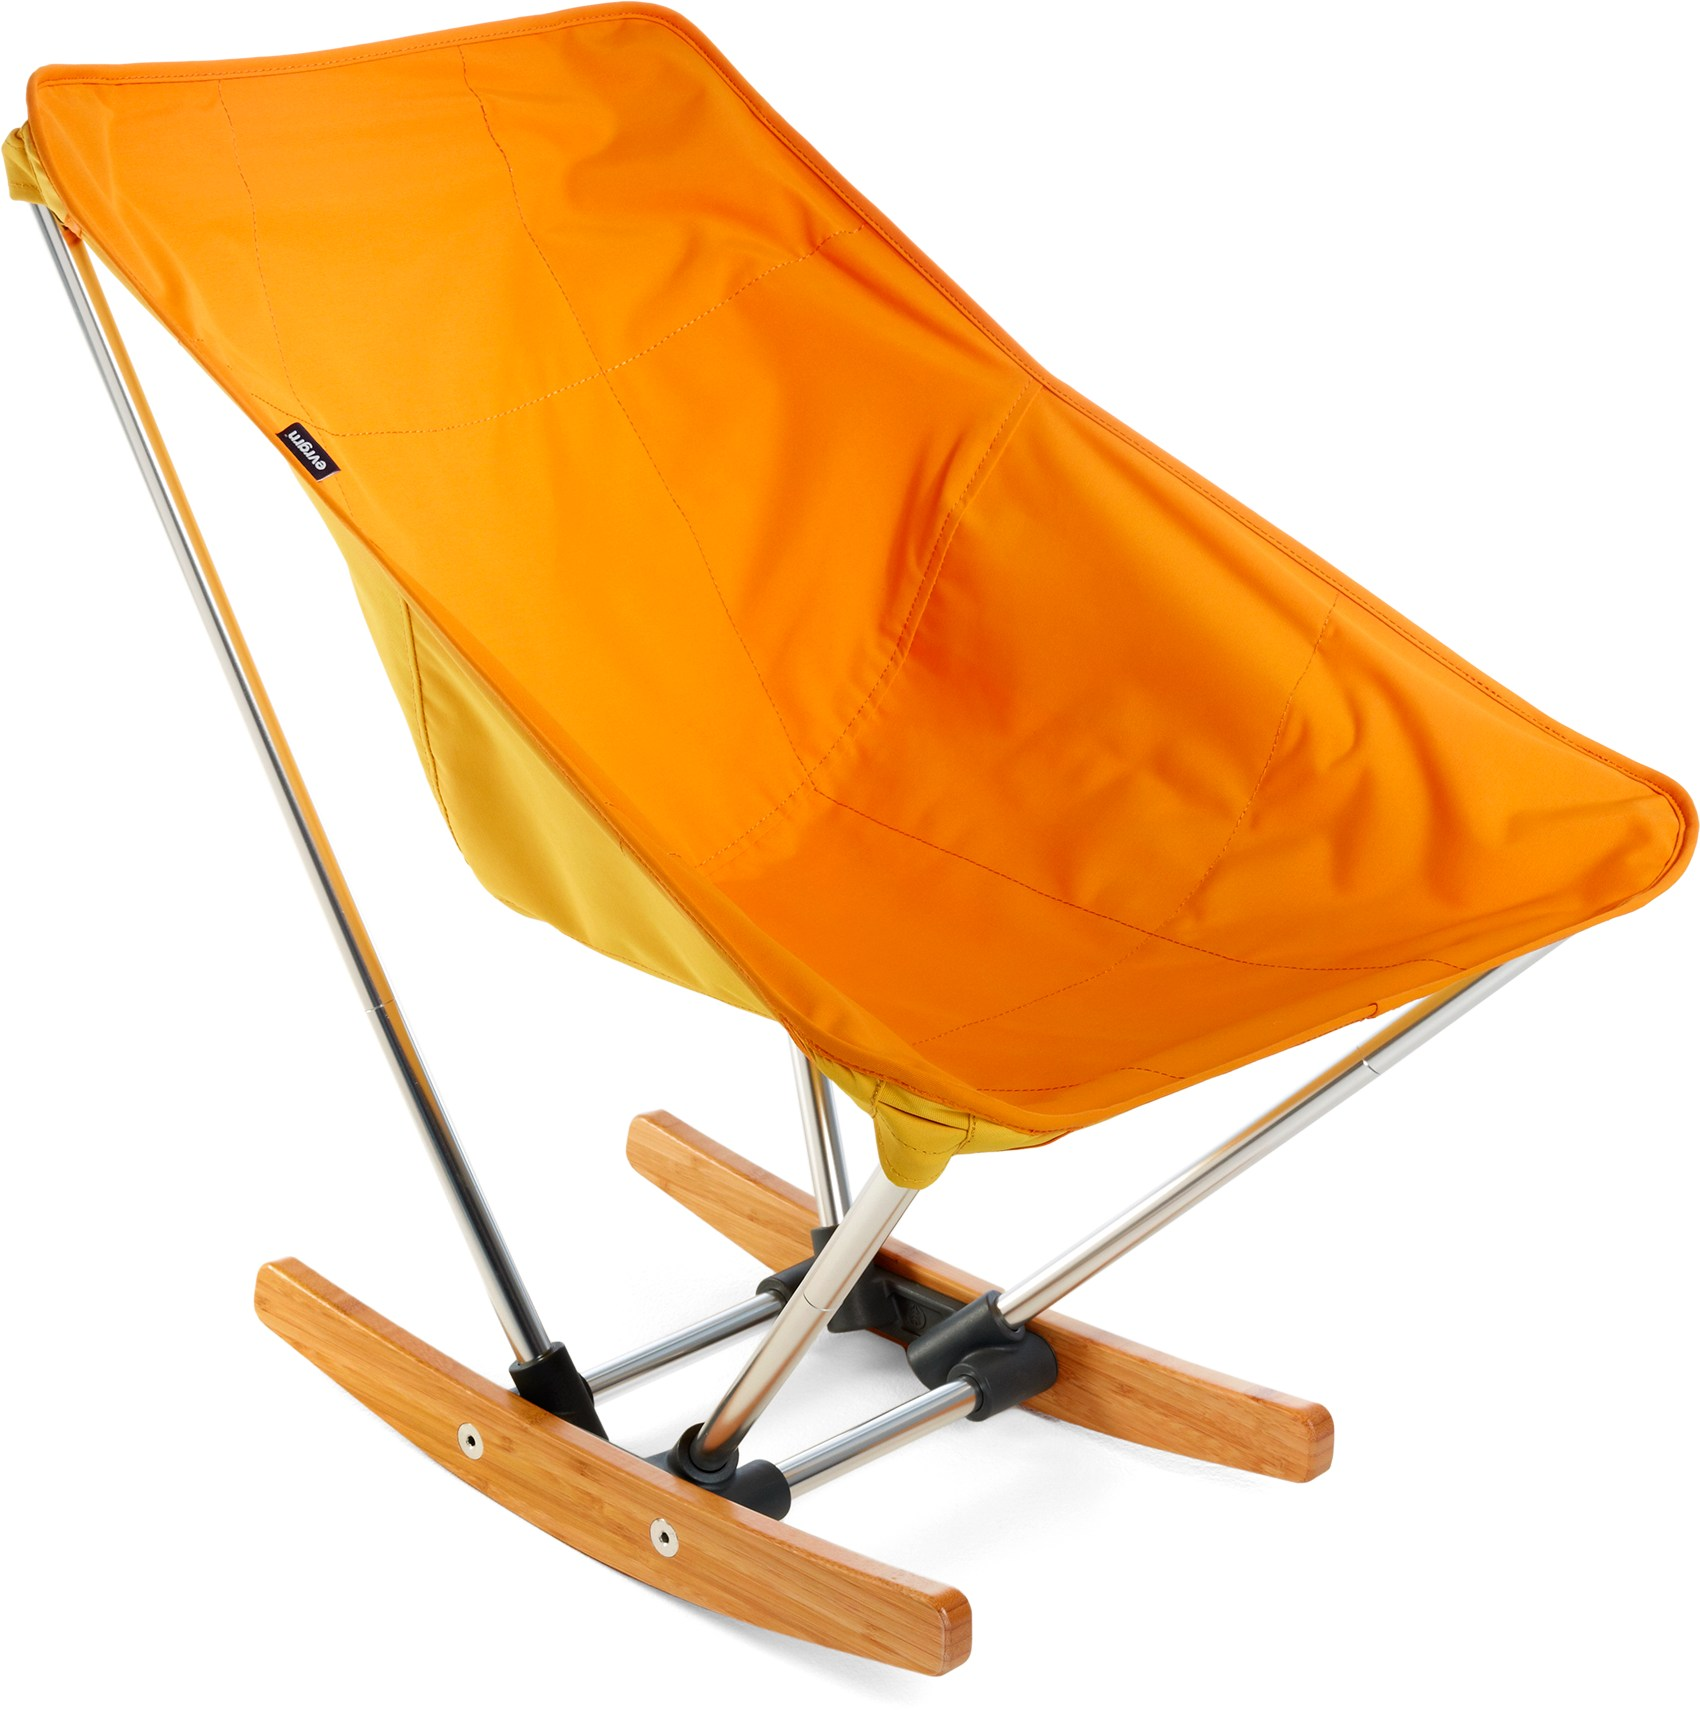 camp chairs rei folding chair ace hardware introduces a rocking camping traversing